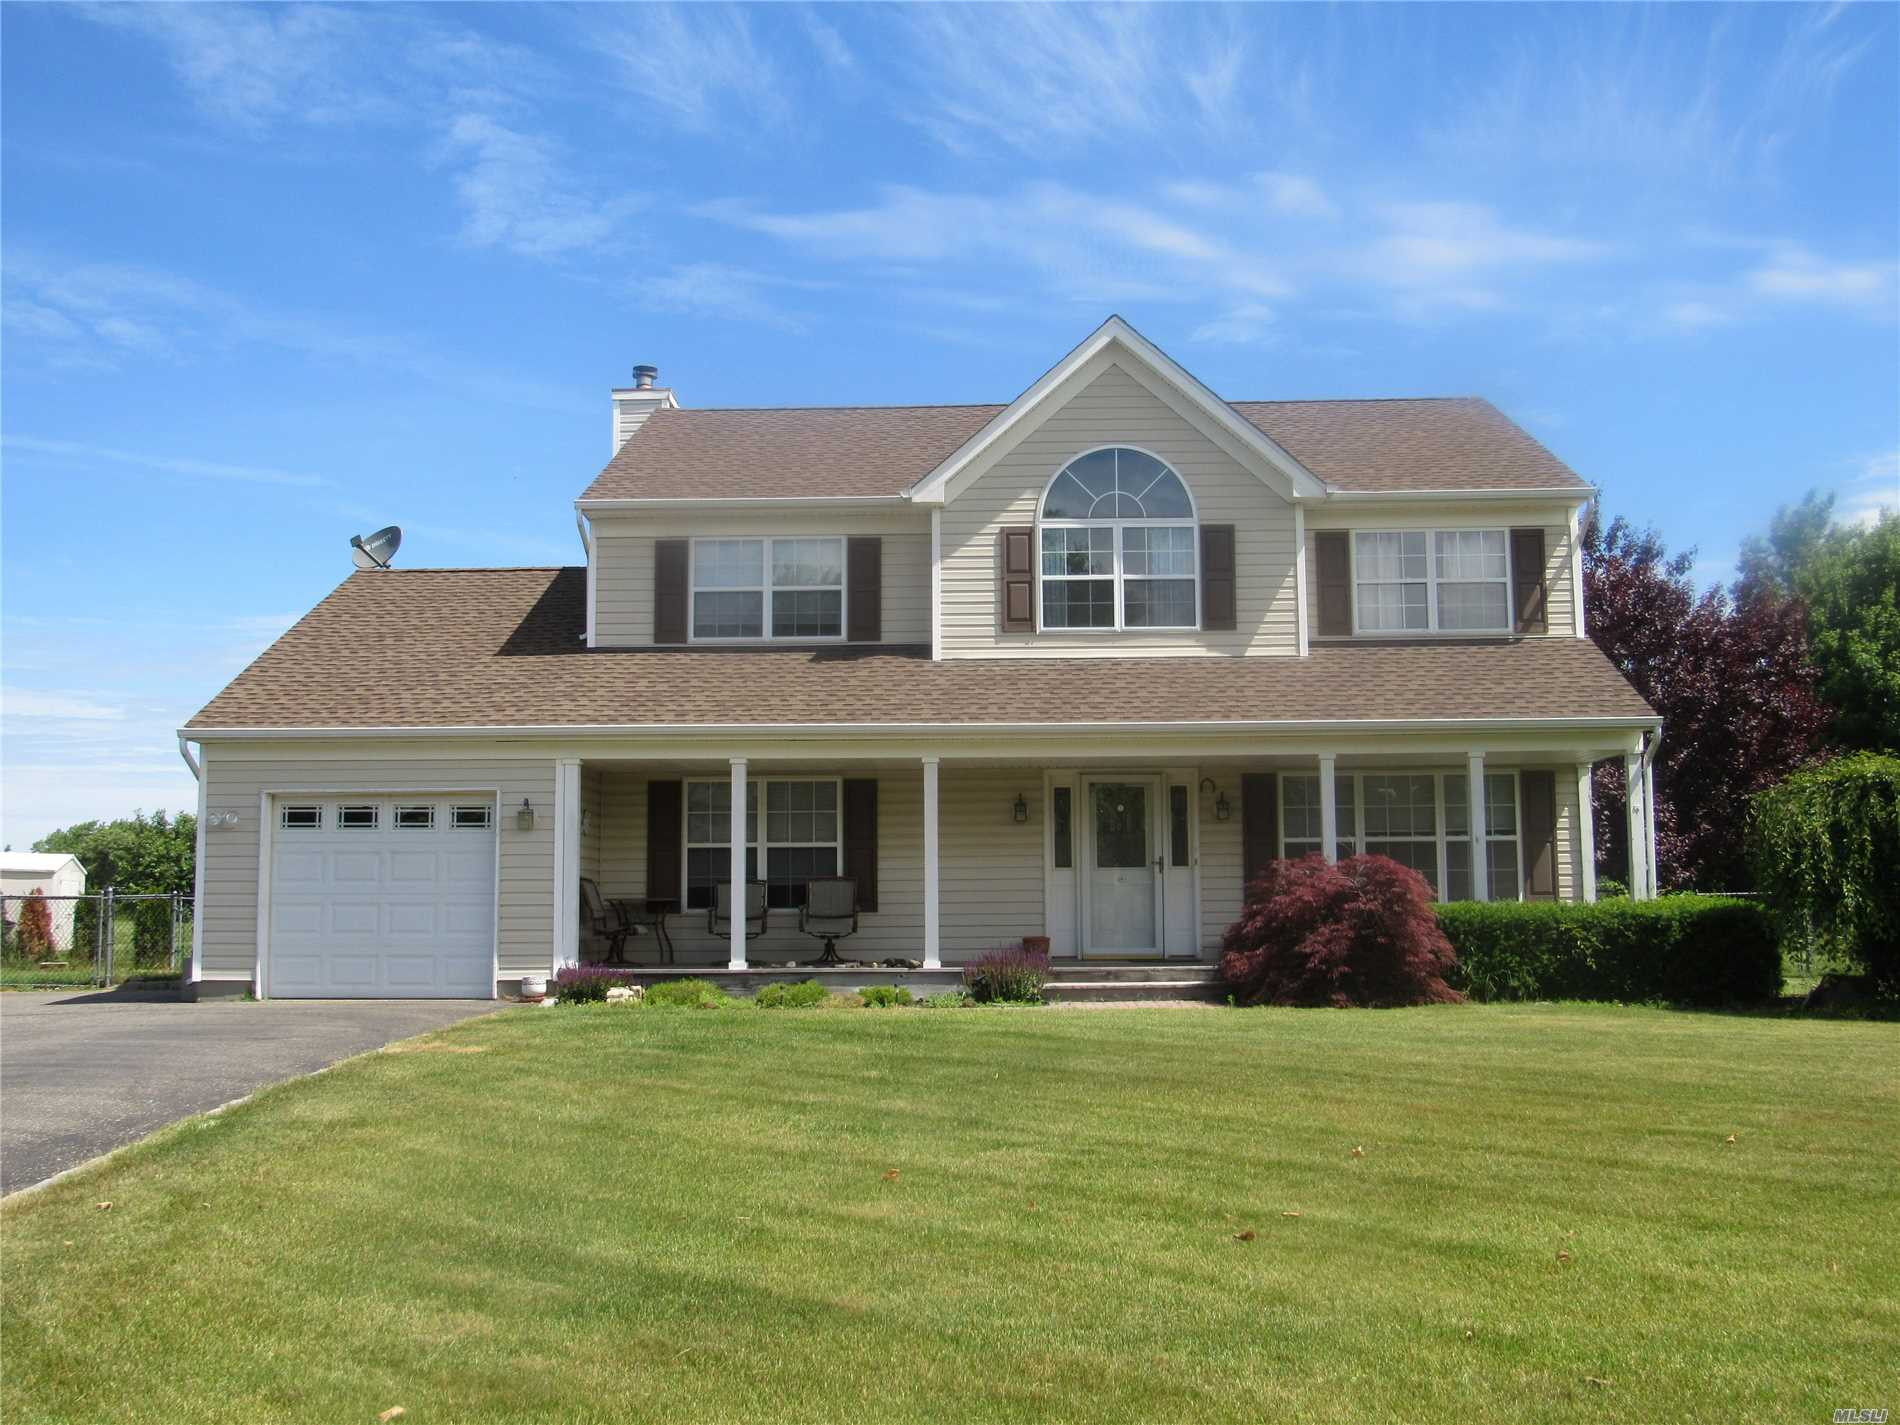 Lovely 4 Bedroom, 2.5 Bath Home. Master Suite With Sunken Tub, Inground Pool On Beautiful Property Overlooking Farmland. Roof Is Approximately 3 Years Old.